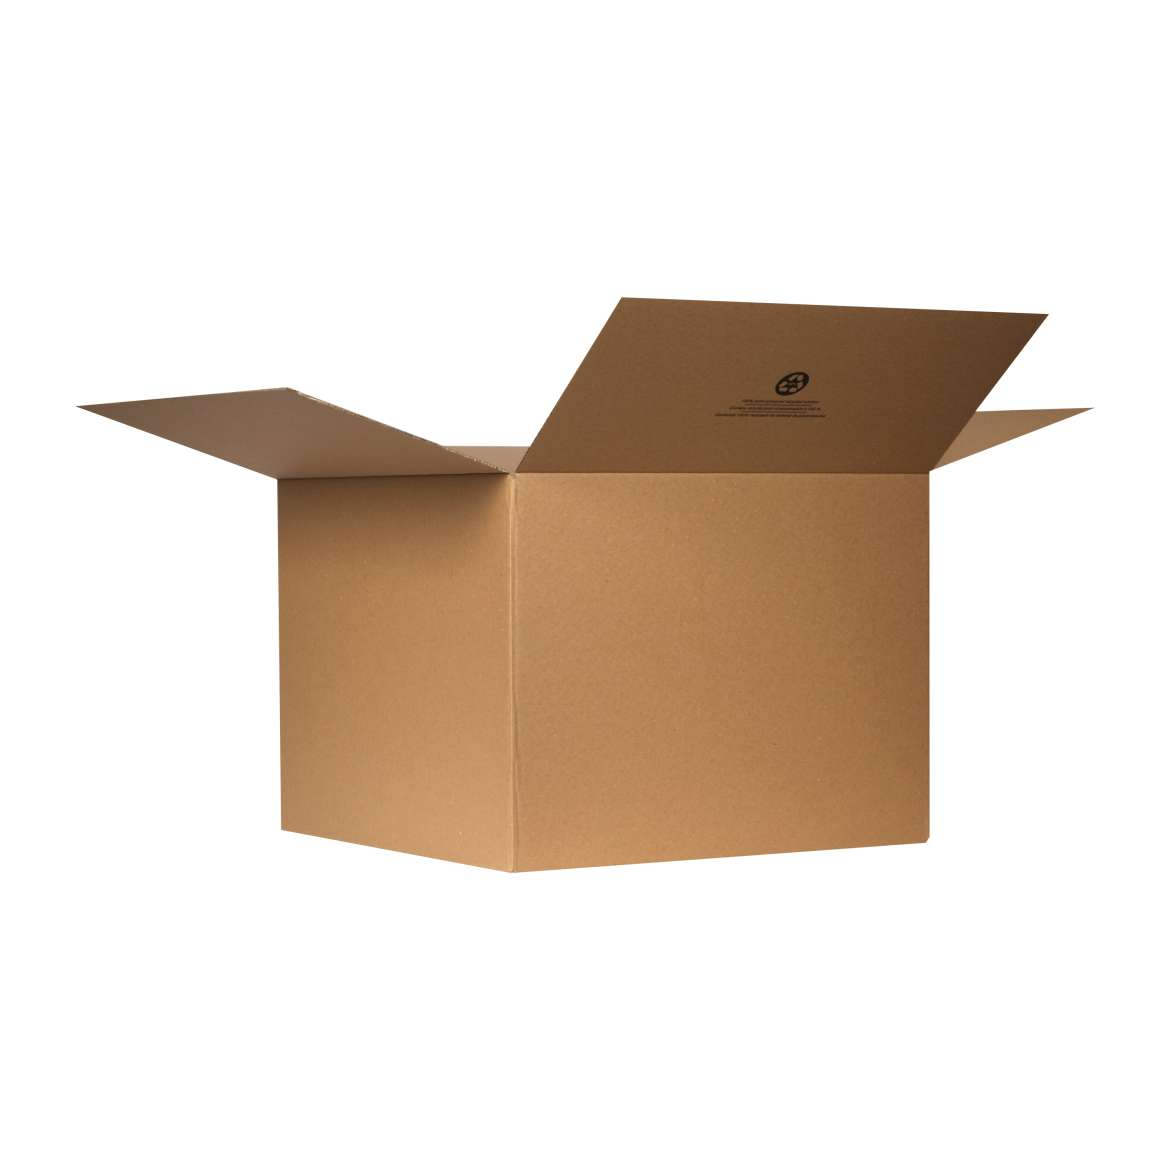 Duck® Brand Kraft Box - Brown, 24 in. x 24 in. x 18 in. Image